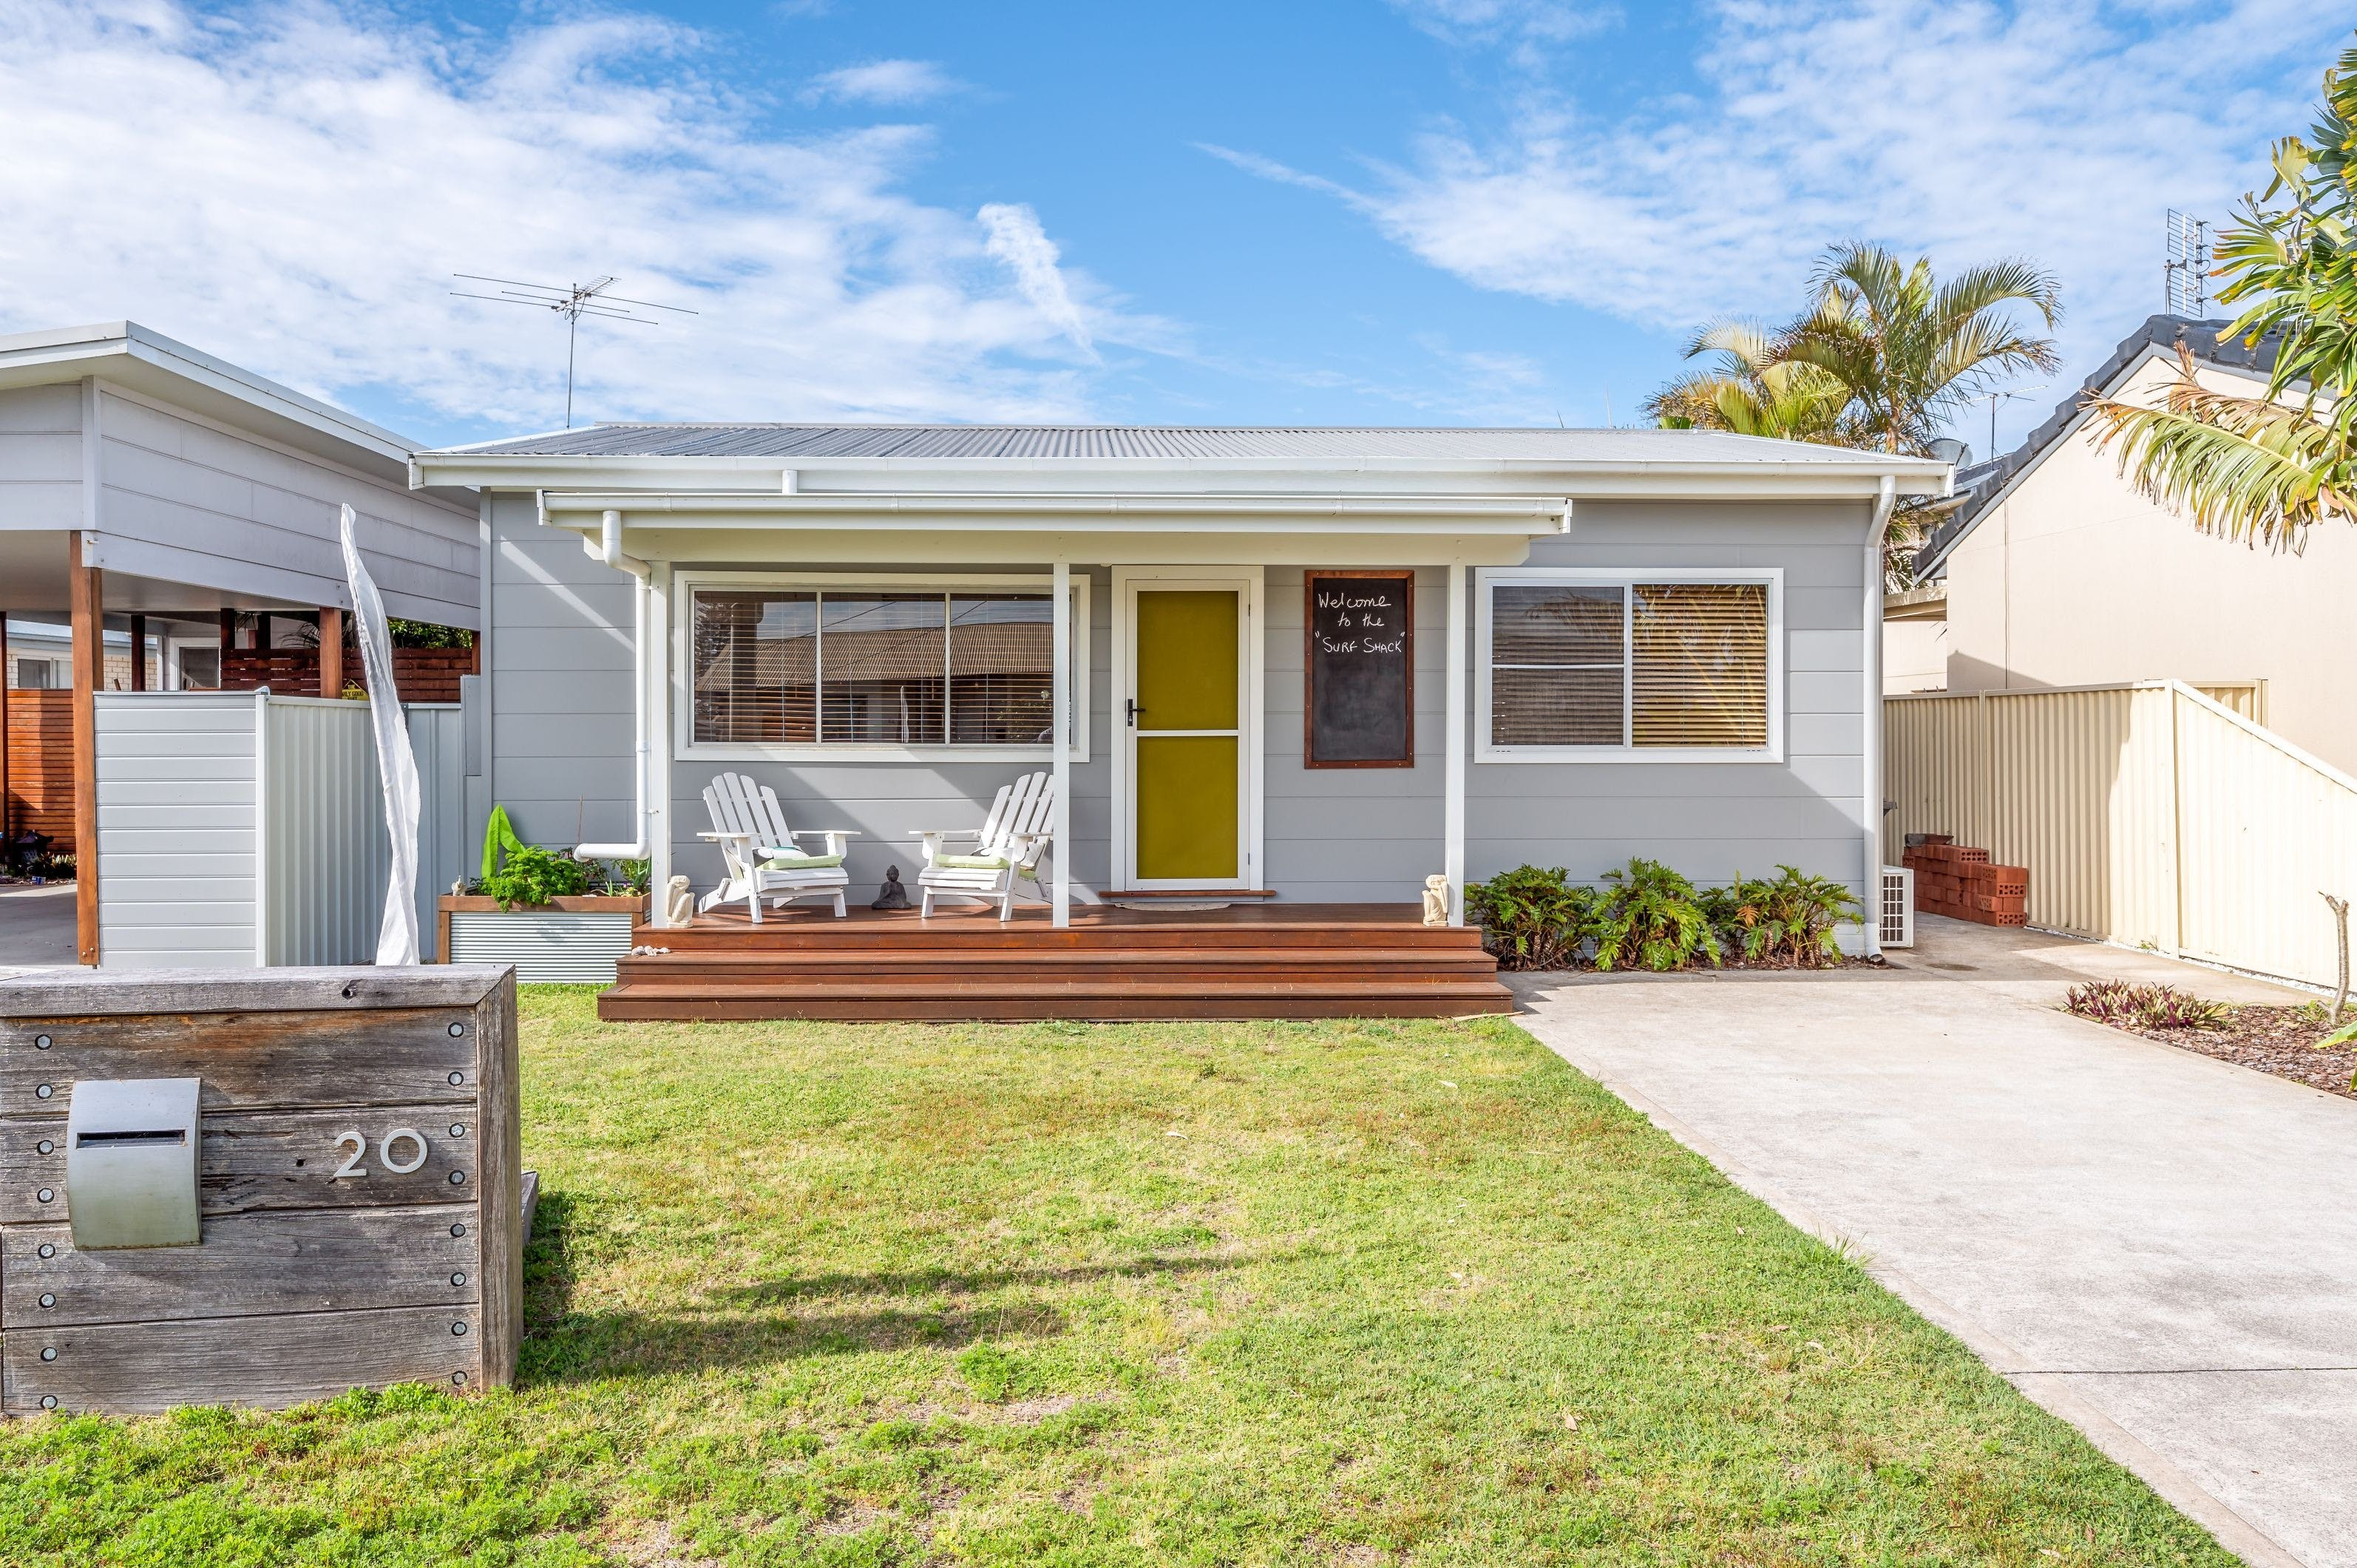 Surf Shack - Accommodation Perth